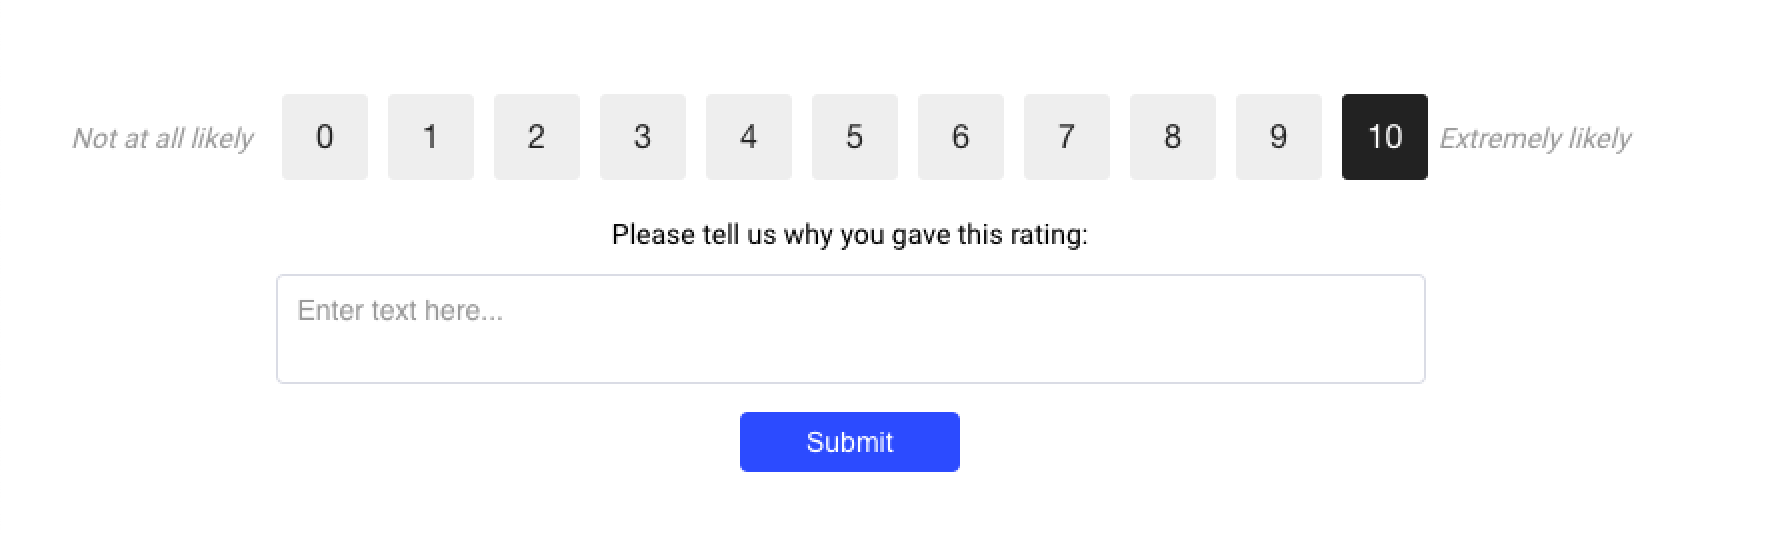 An NPS survey question asking customers 'On a scale of 1 to 10, how likely are you to recommend our product to a friend or colleague?' with a follow up 'Please tell us why you gave us this rating.'